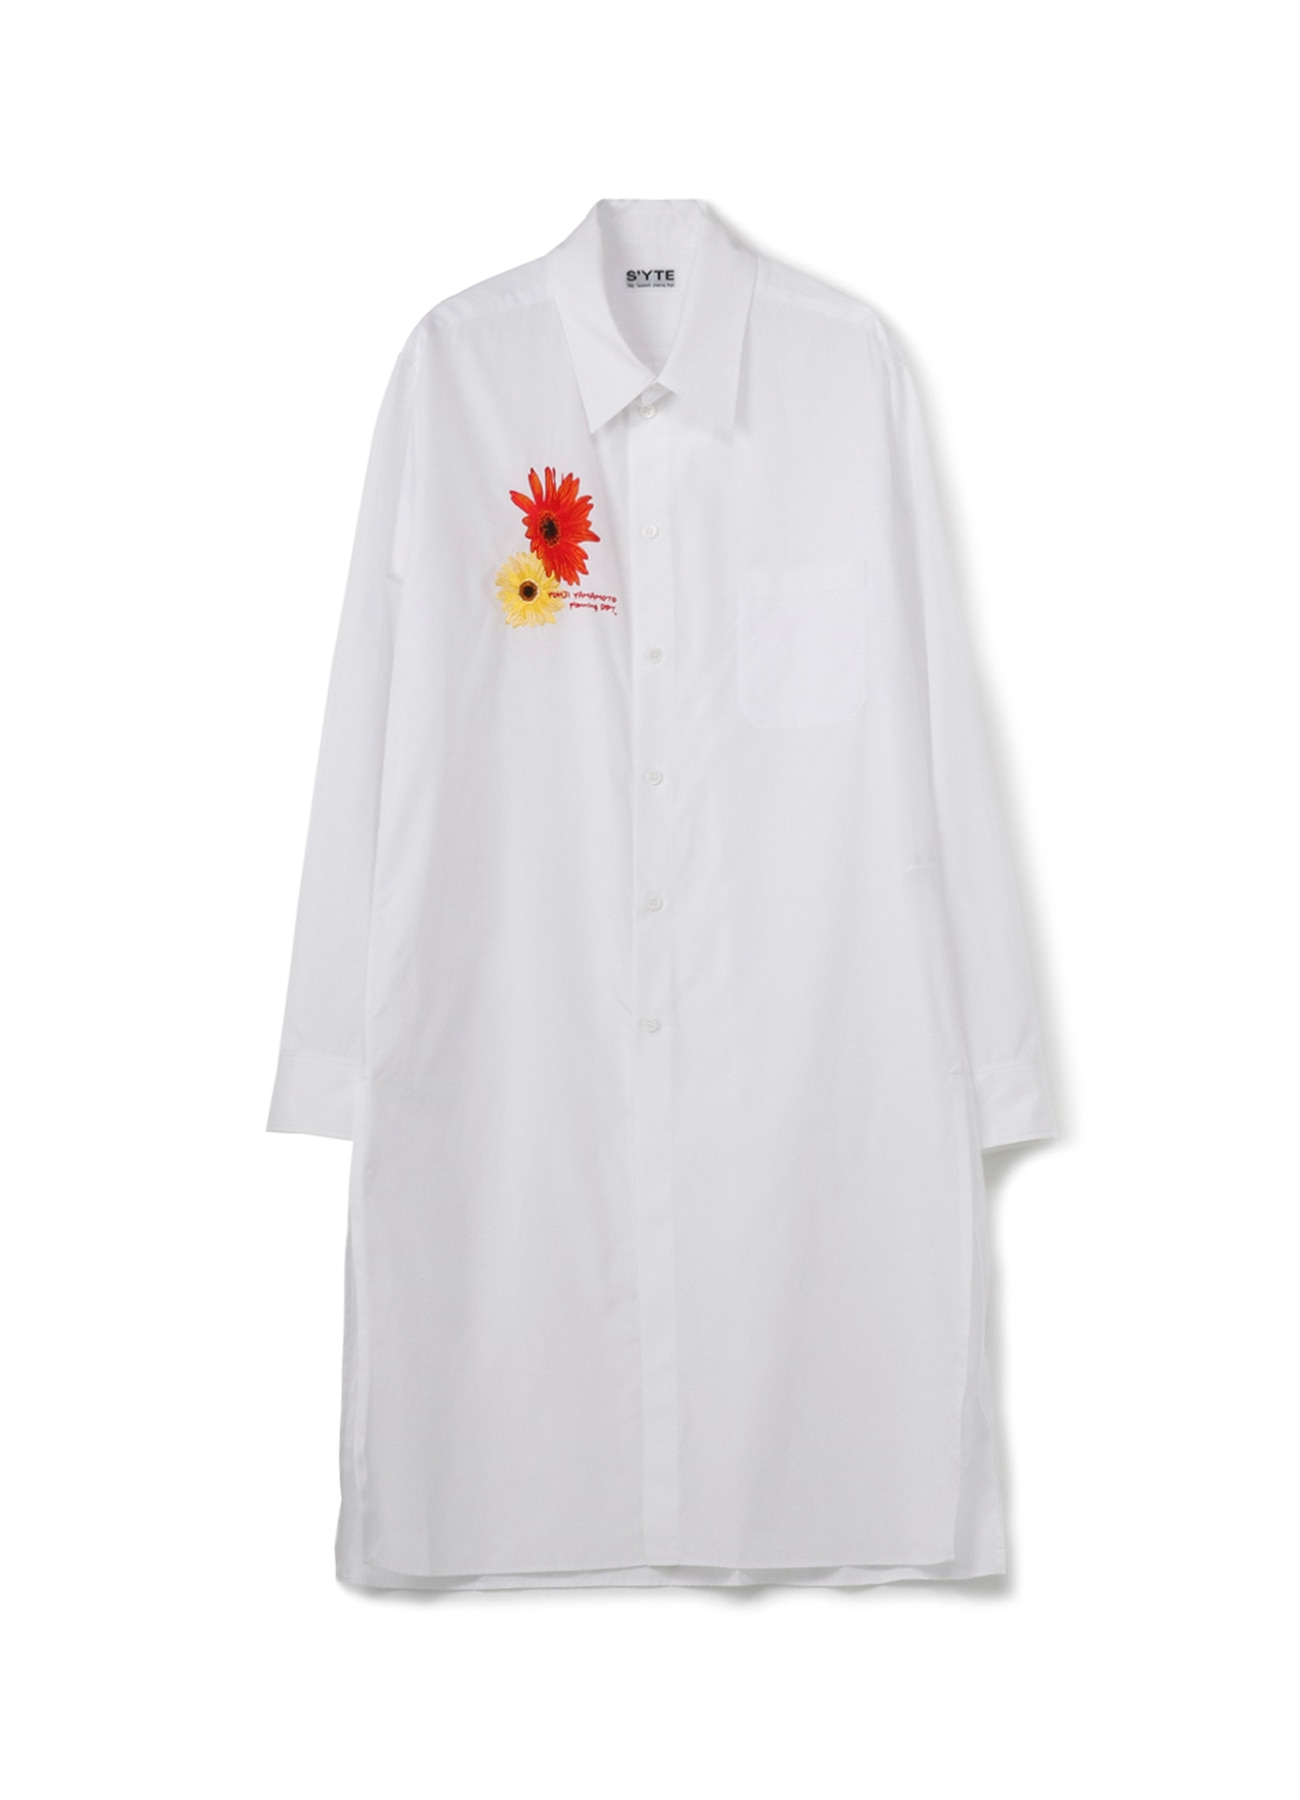 100/2 Broad Sunflower Gerbera Flower Embroidery Regular Collar Long Shirt